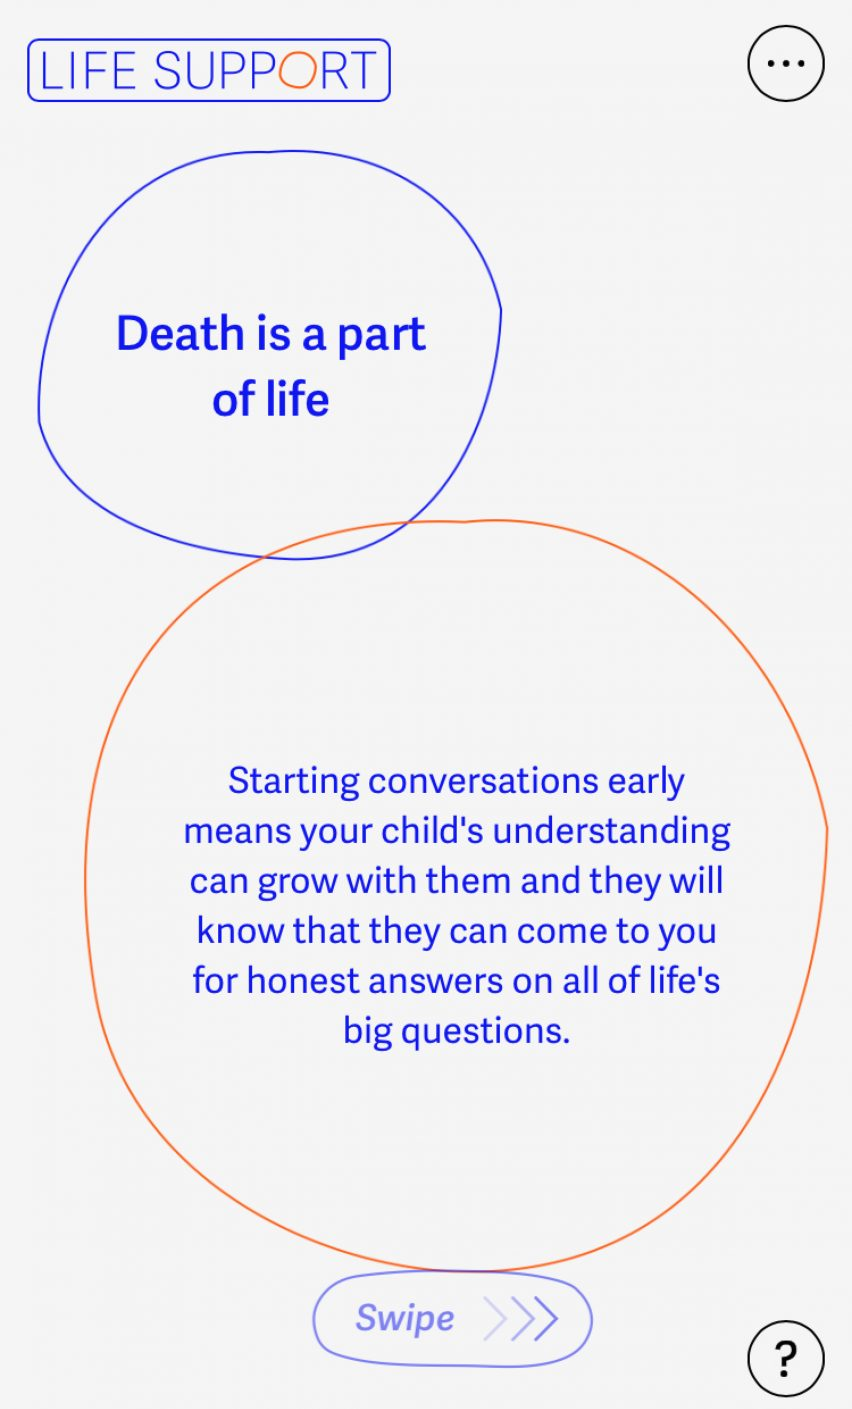 Life Support is a mobile-first digital tool